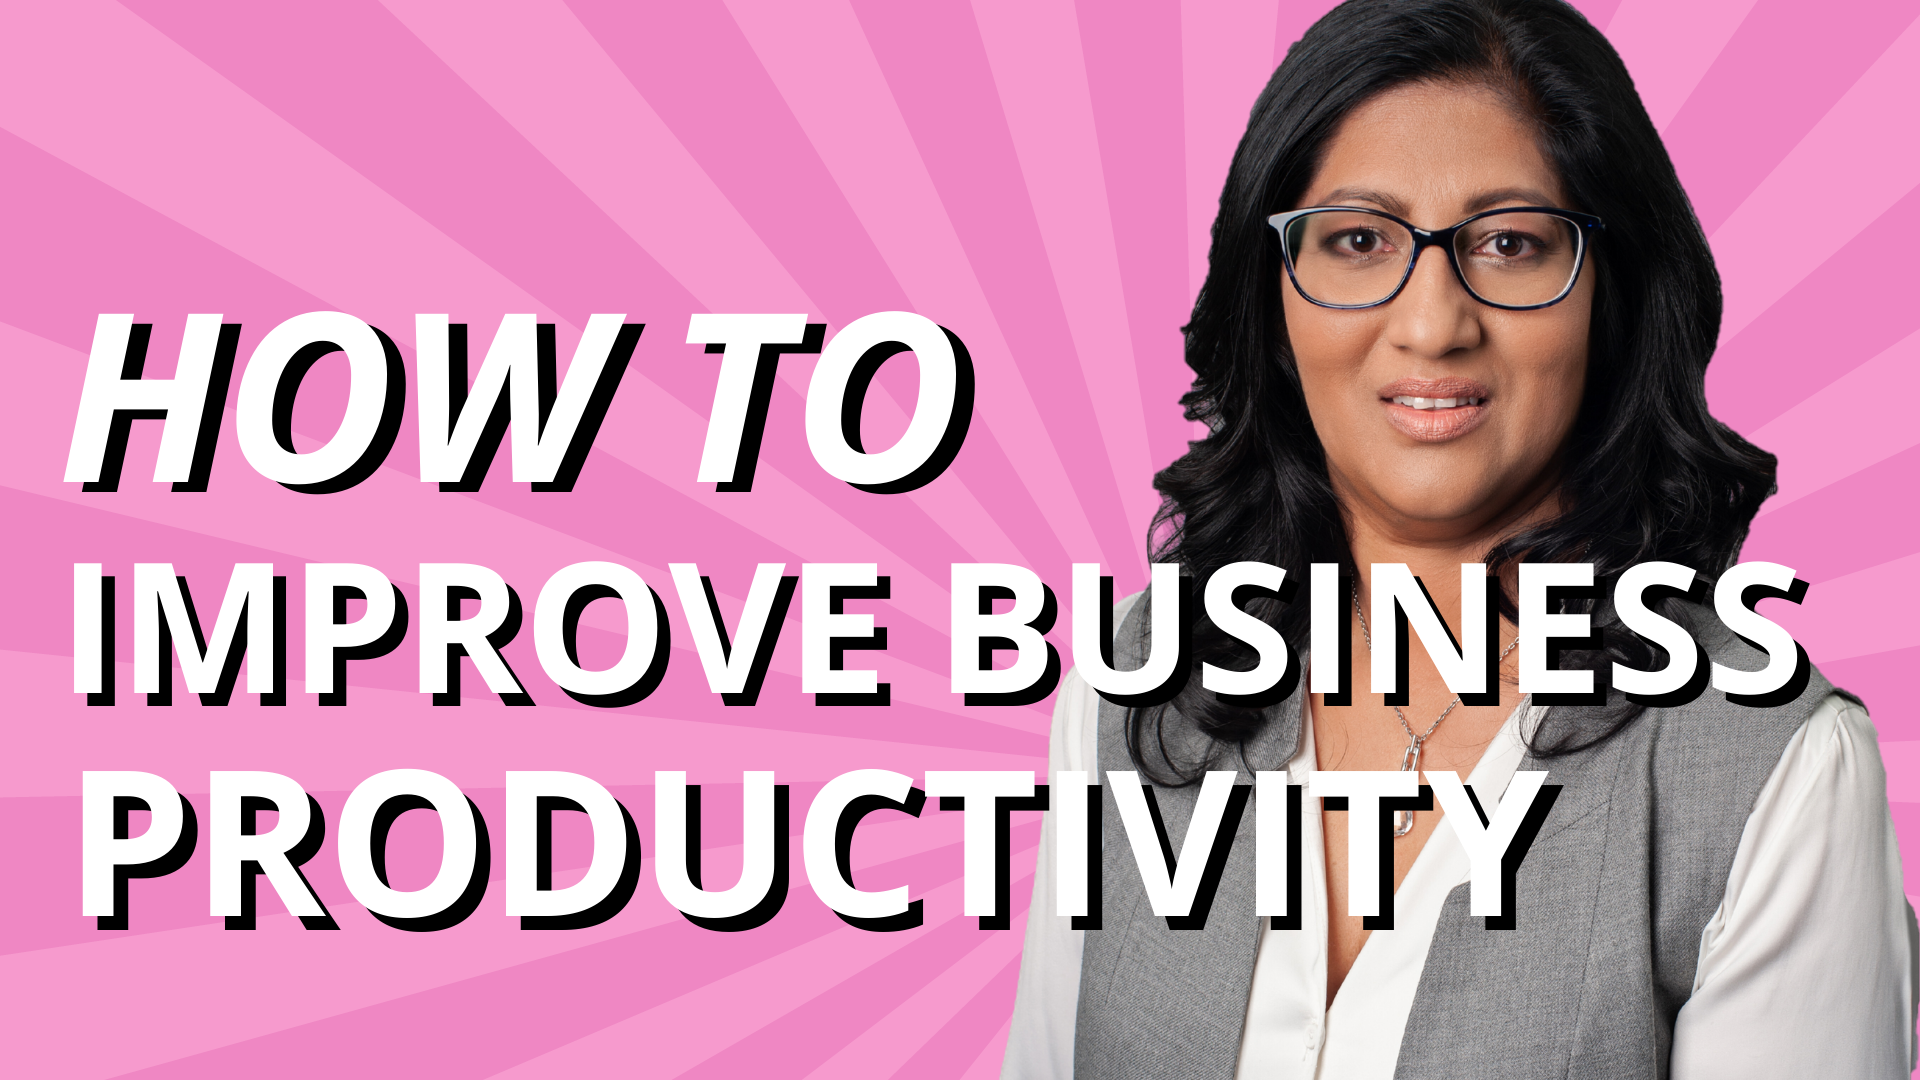 How To Improve Business Productivity